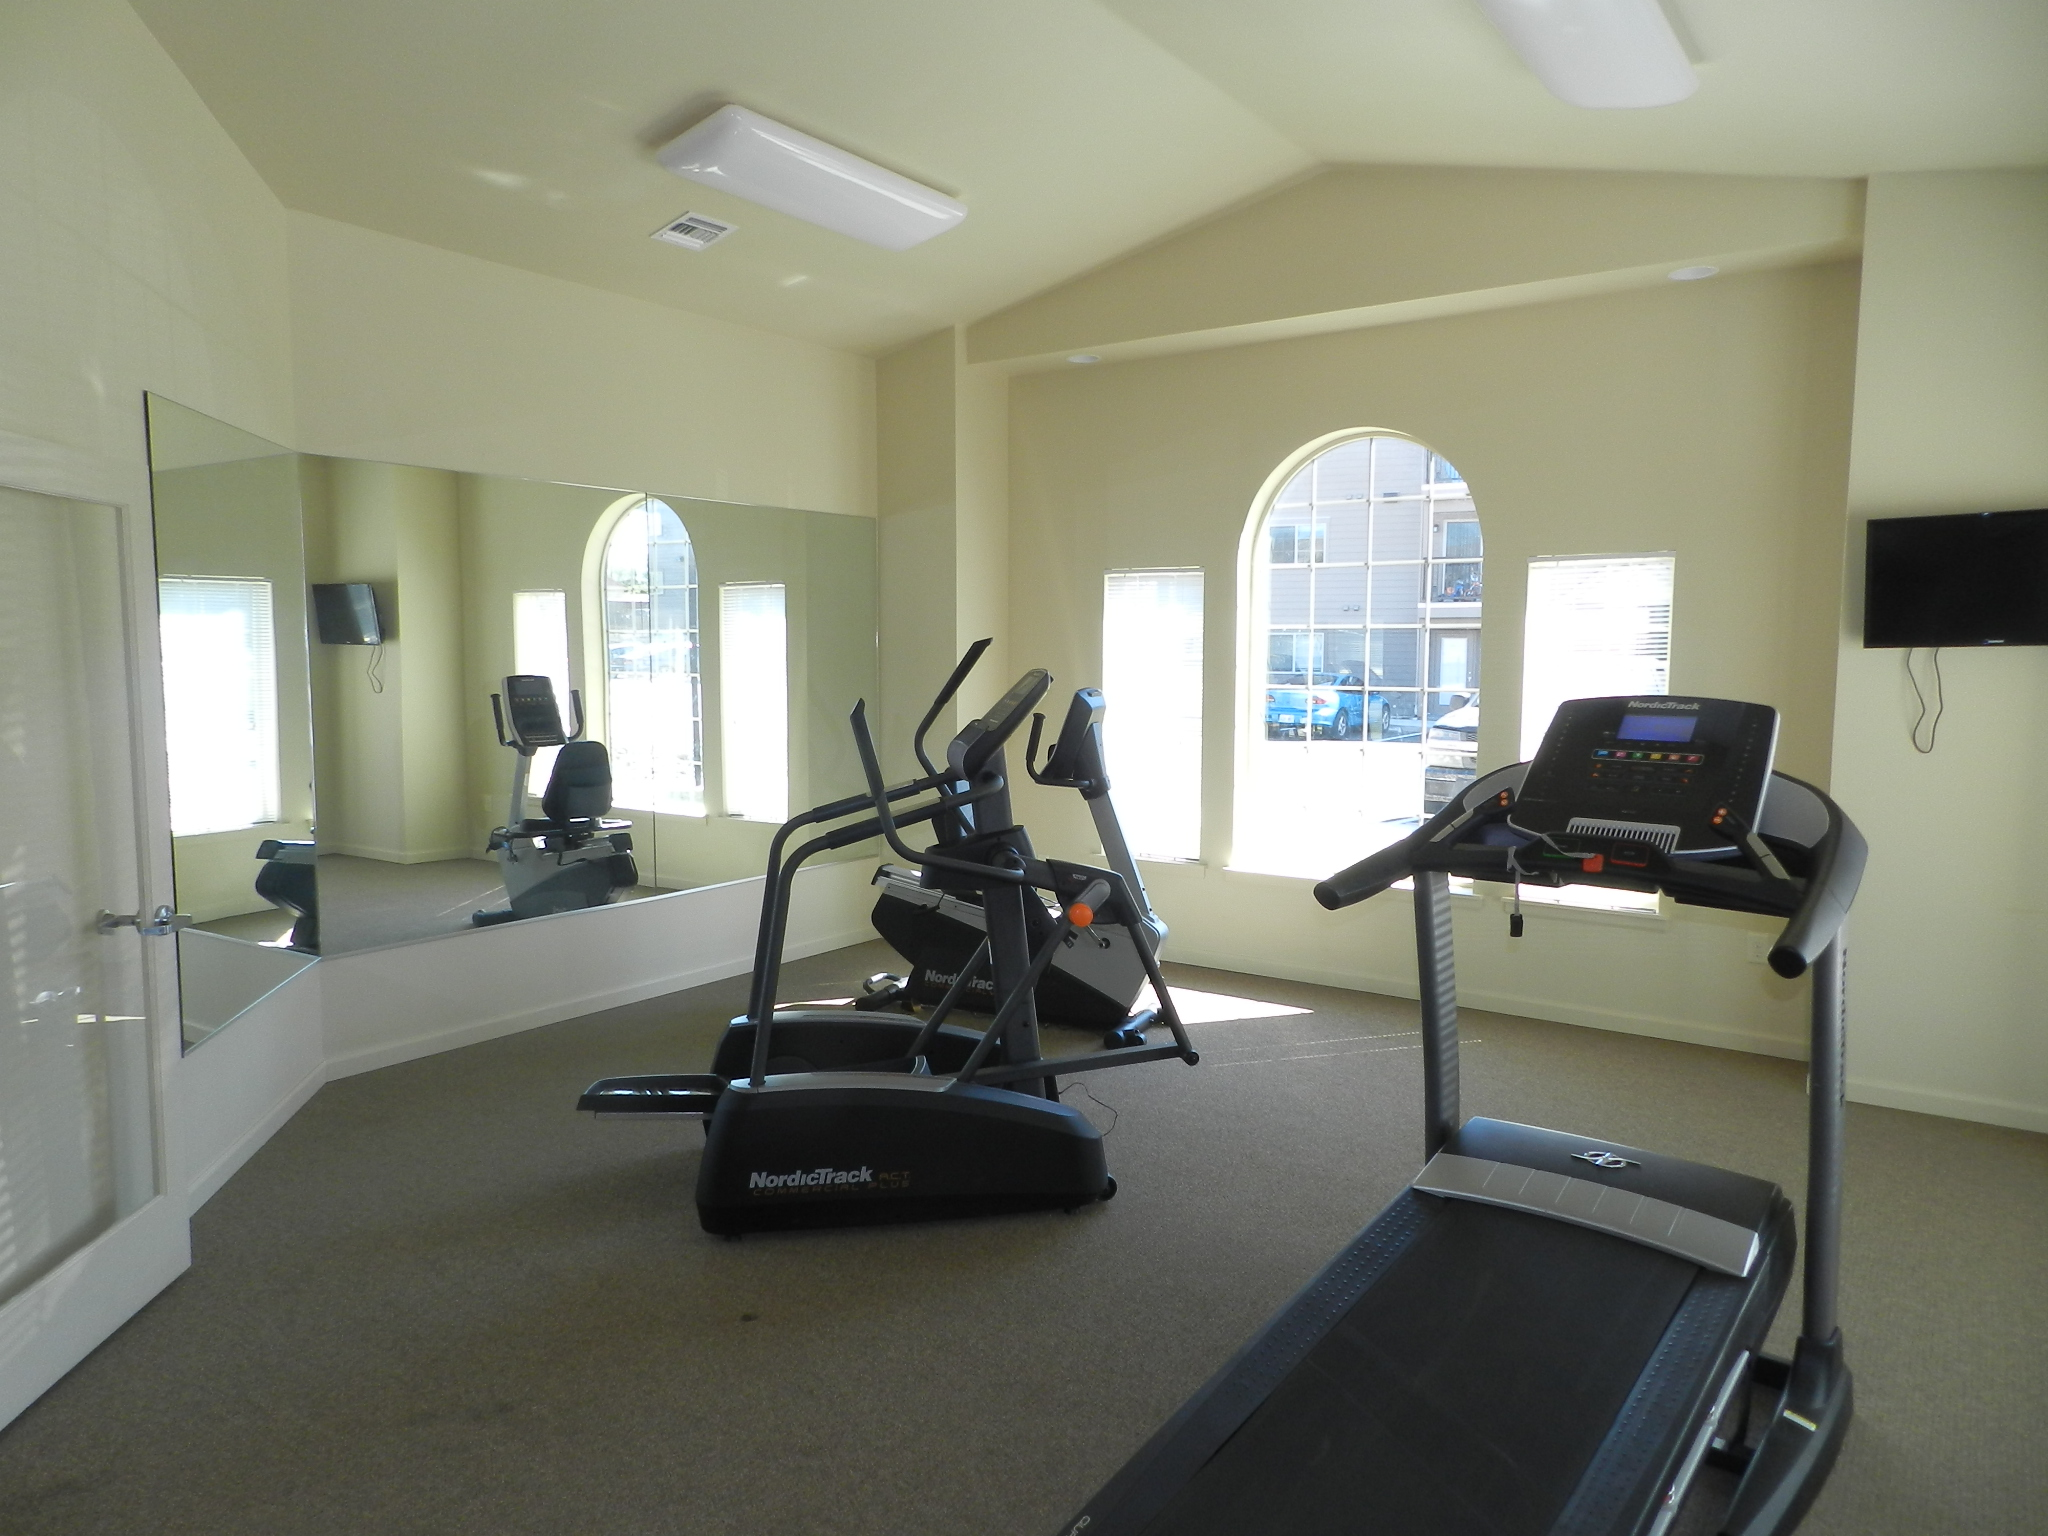 Image of Fitness Center for Beech Street Apartments